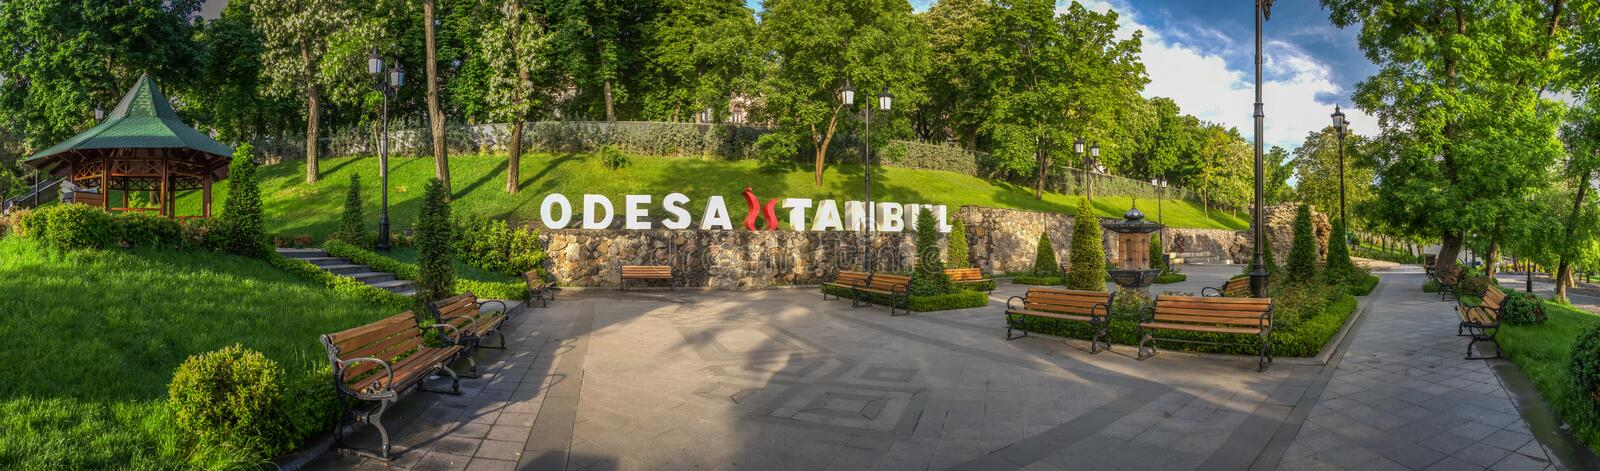 Istambul Park in Odessa, Ukraine royalty free stock photography